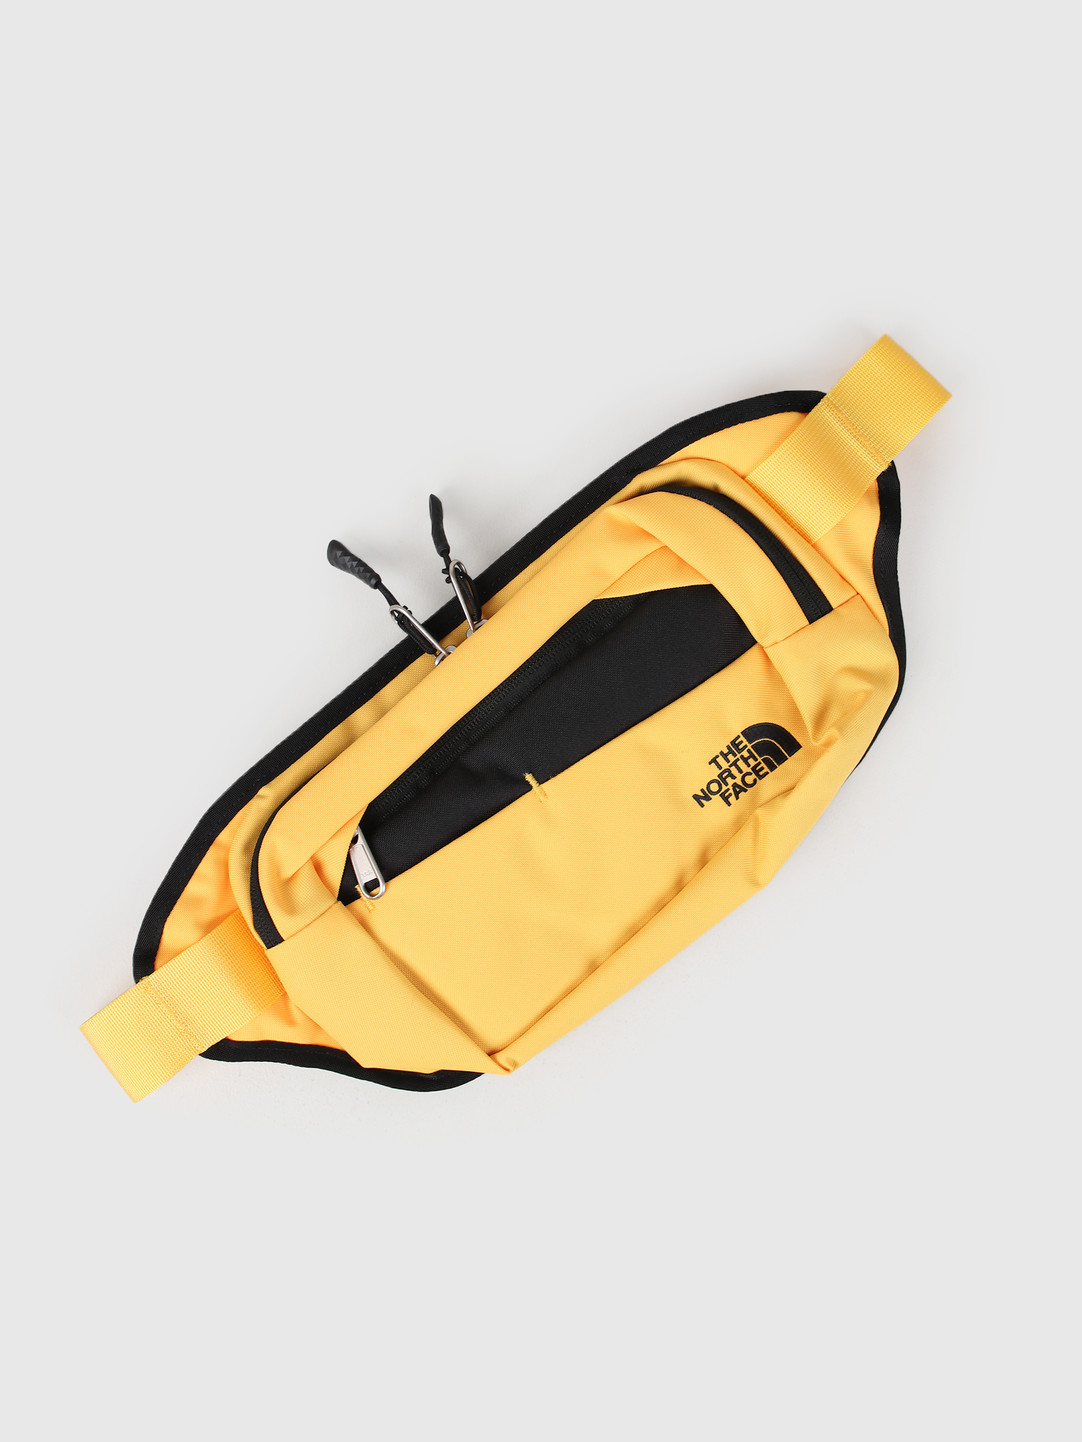 The North Face The North Face Bozer Hip Pack II Yellow Black T92UCXLR0